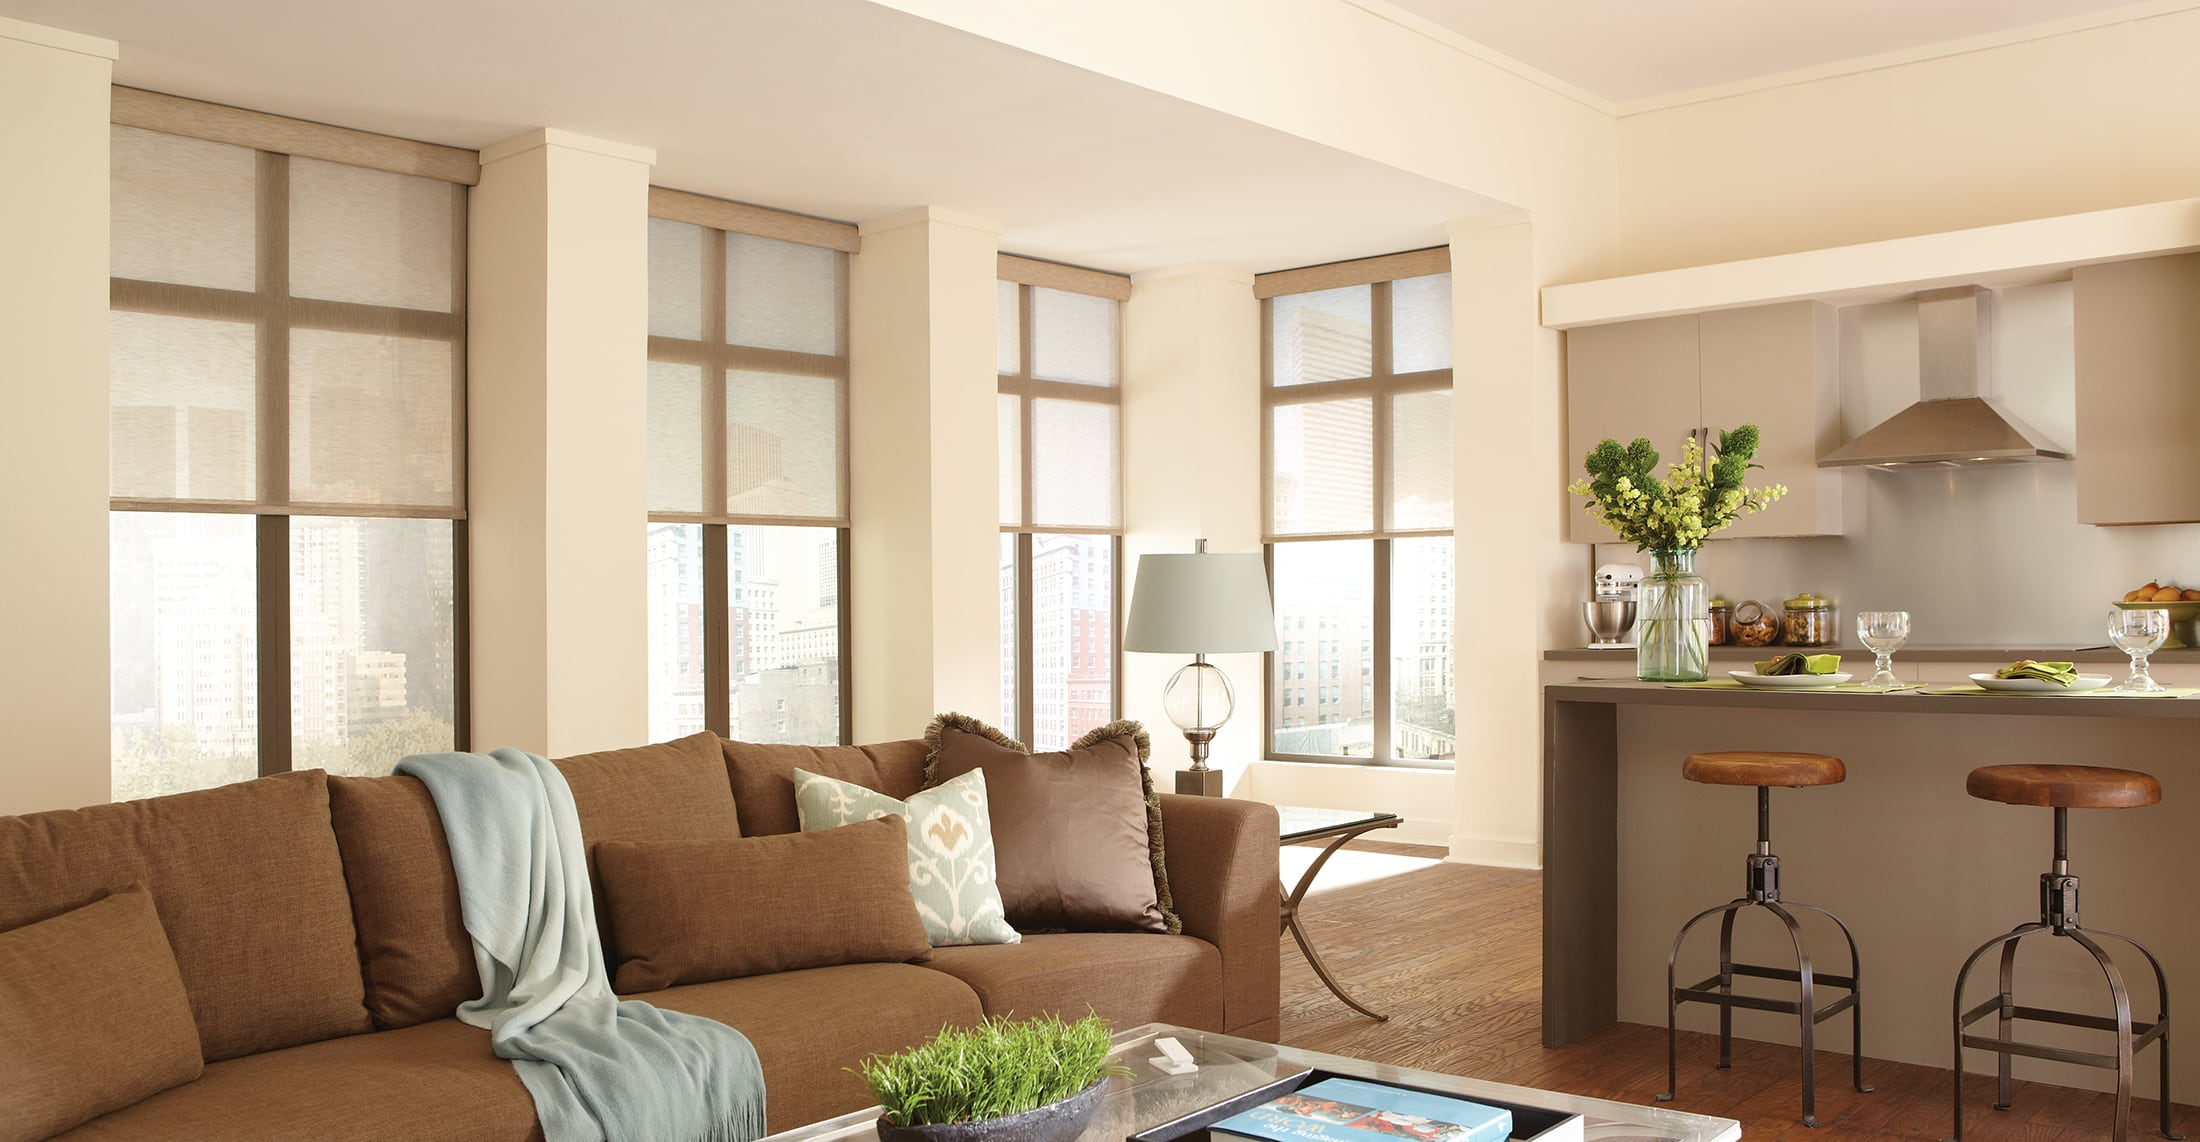 A living room with blinds on the windows